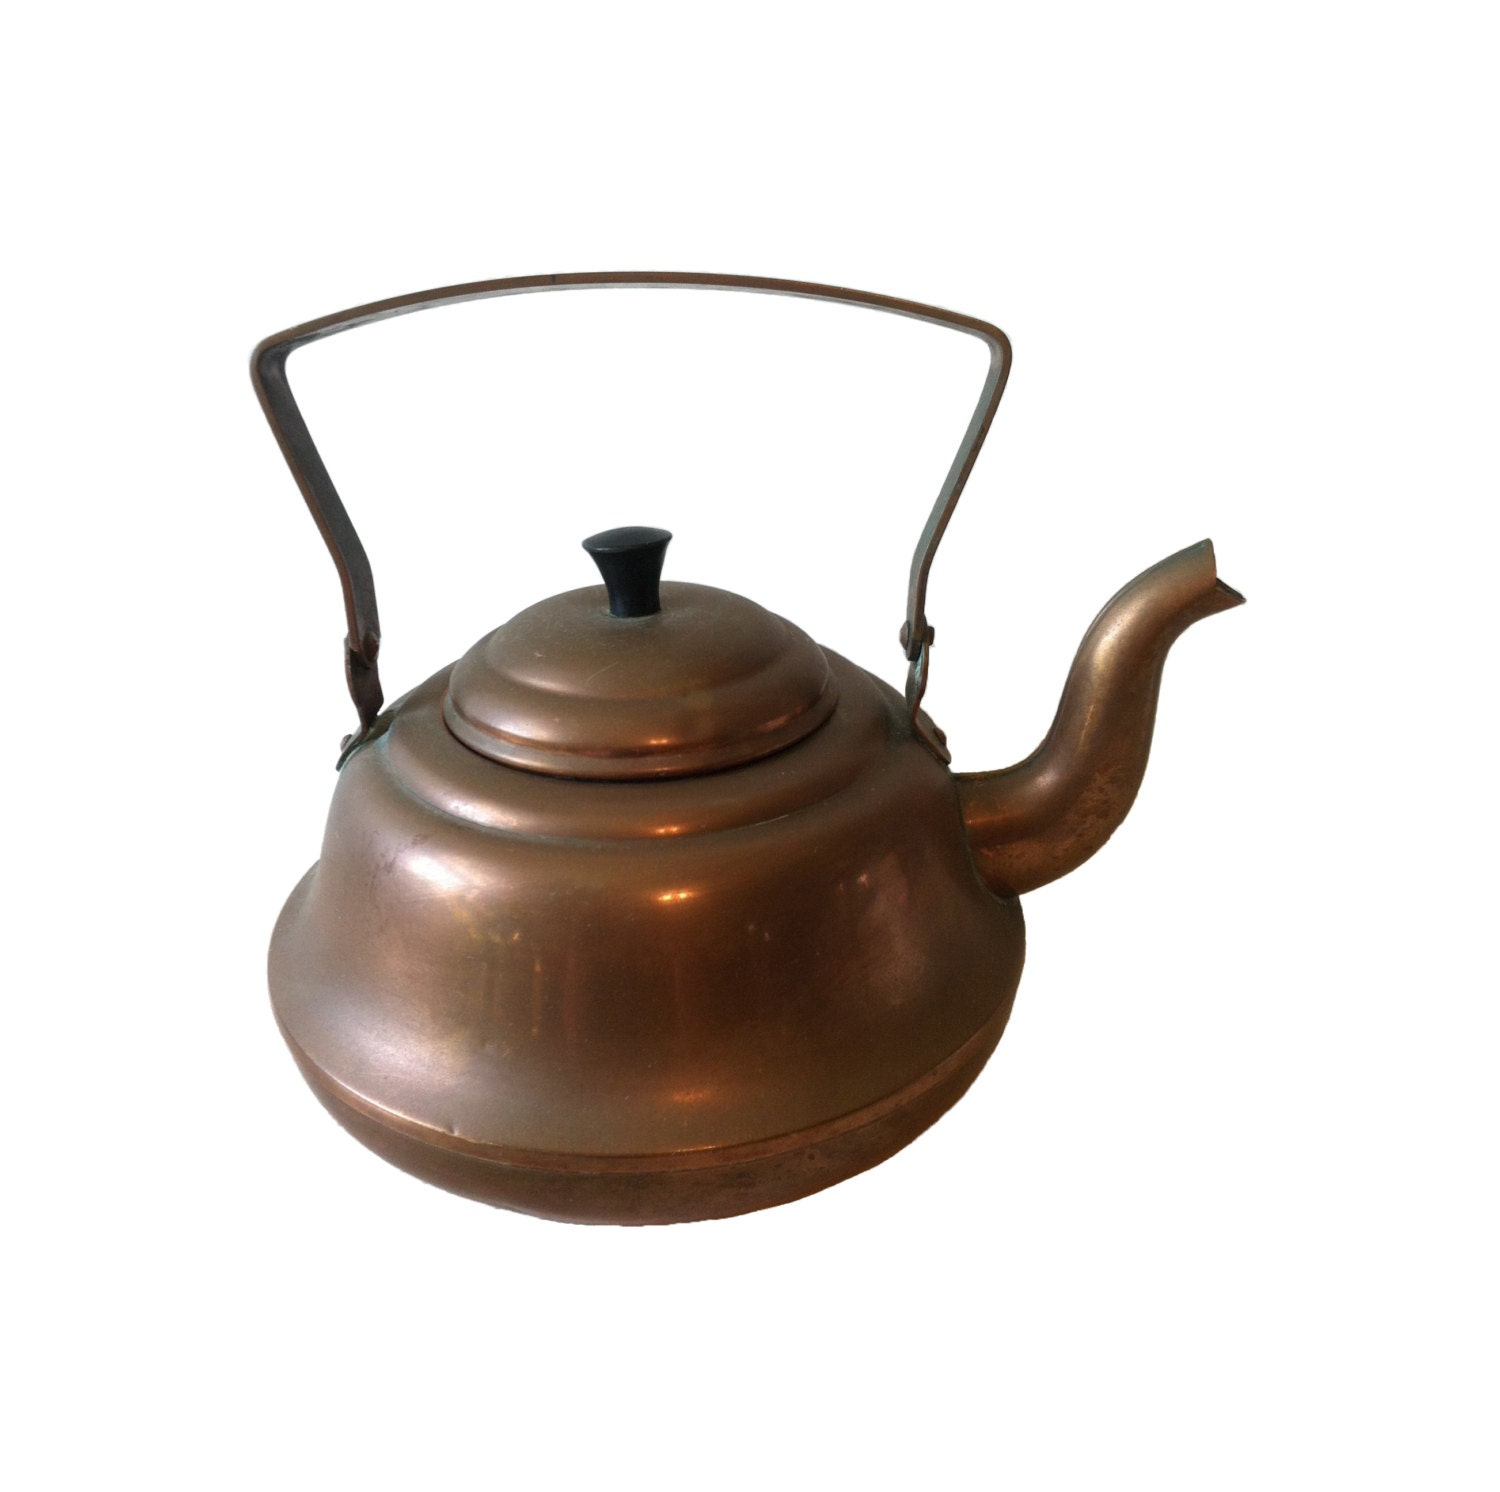 retro tea kettle vintage tea kettle small copper tea kettle by sunflowerretroks 1949